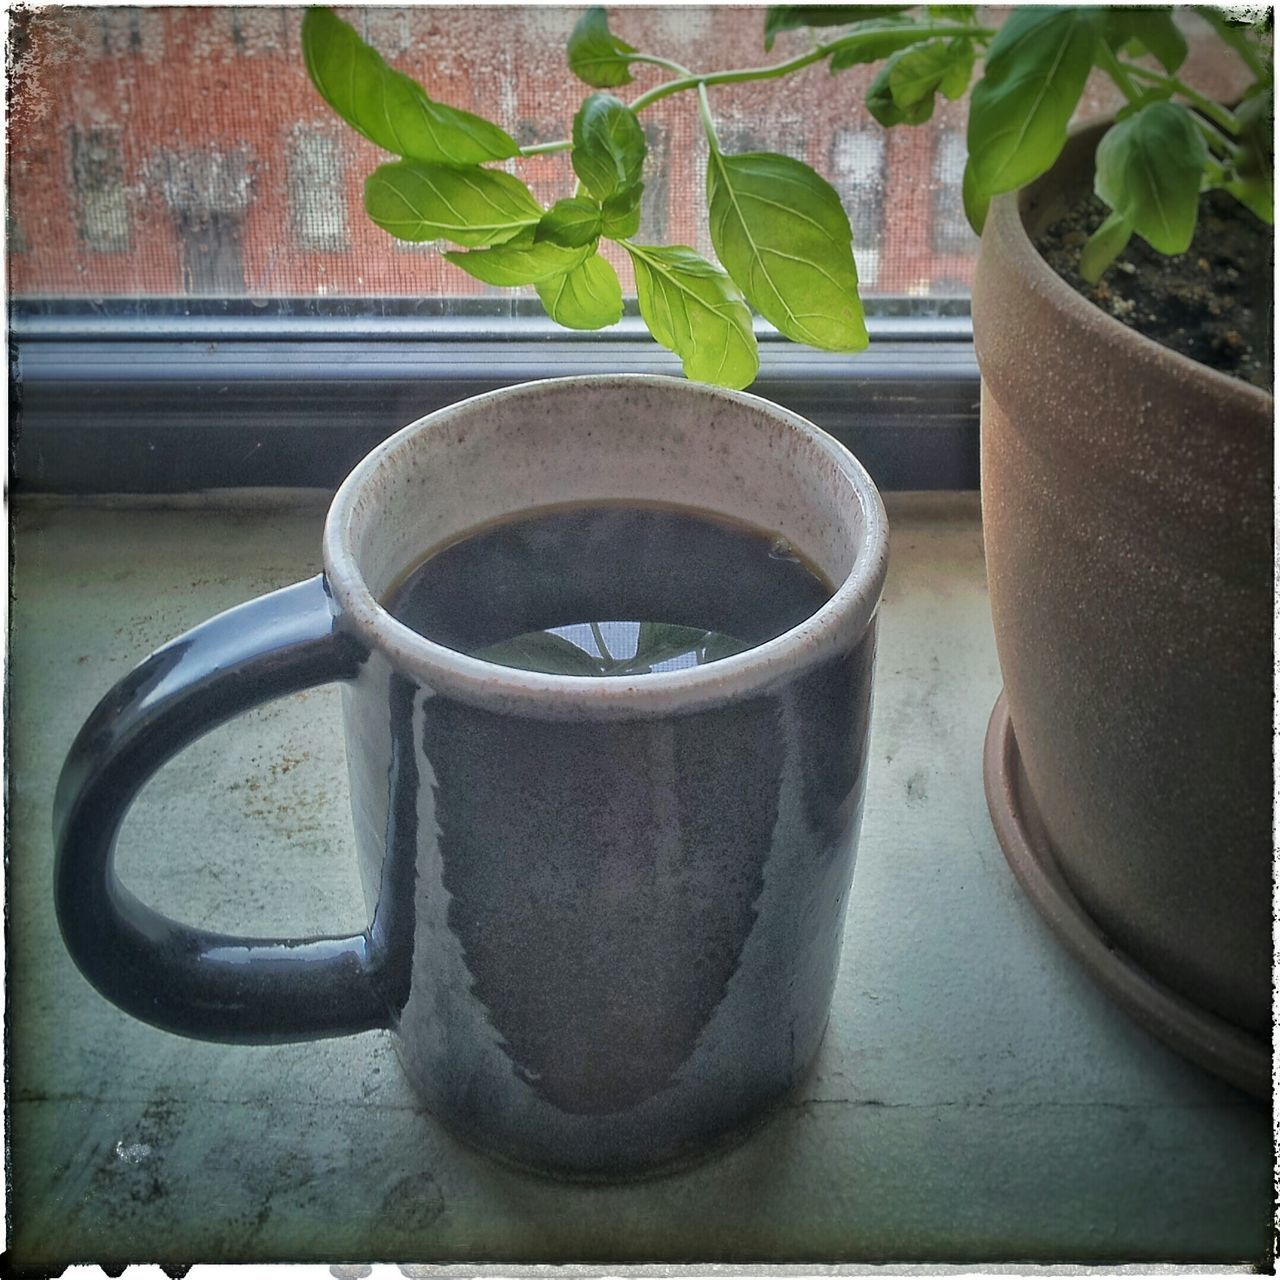 potted plant, plant, growth, leaf, no people, table, indoors, watering can, green color, day, nature, close-up, water, freshness